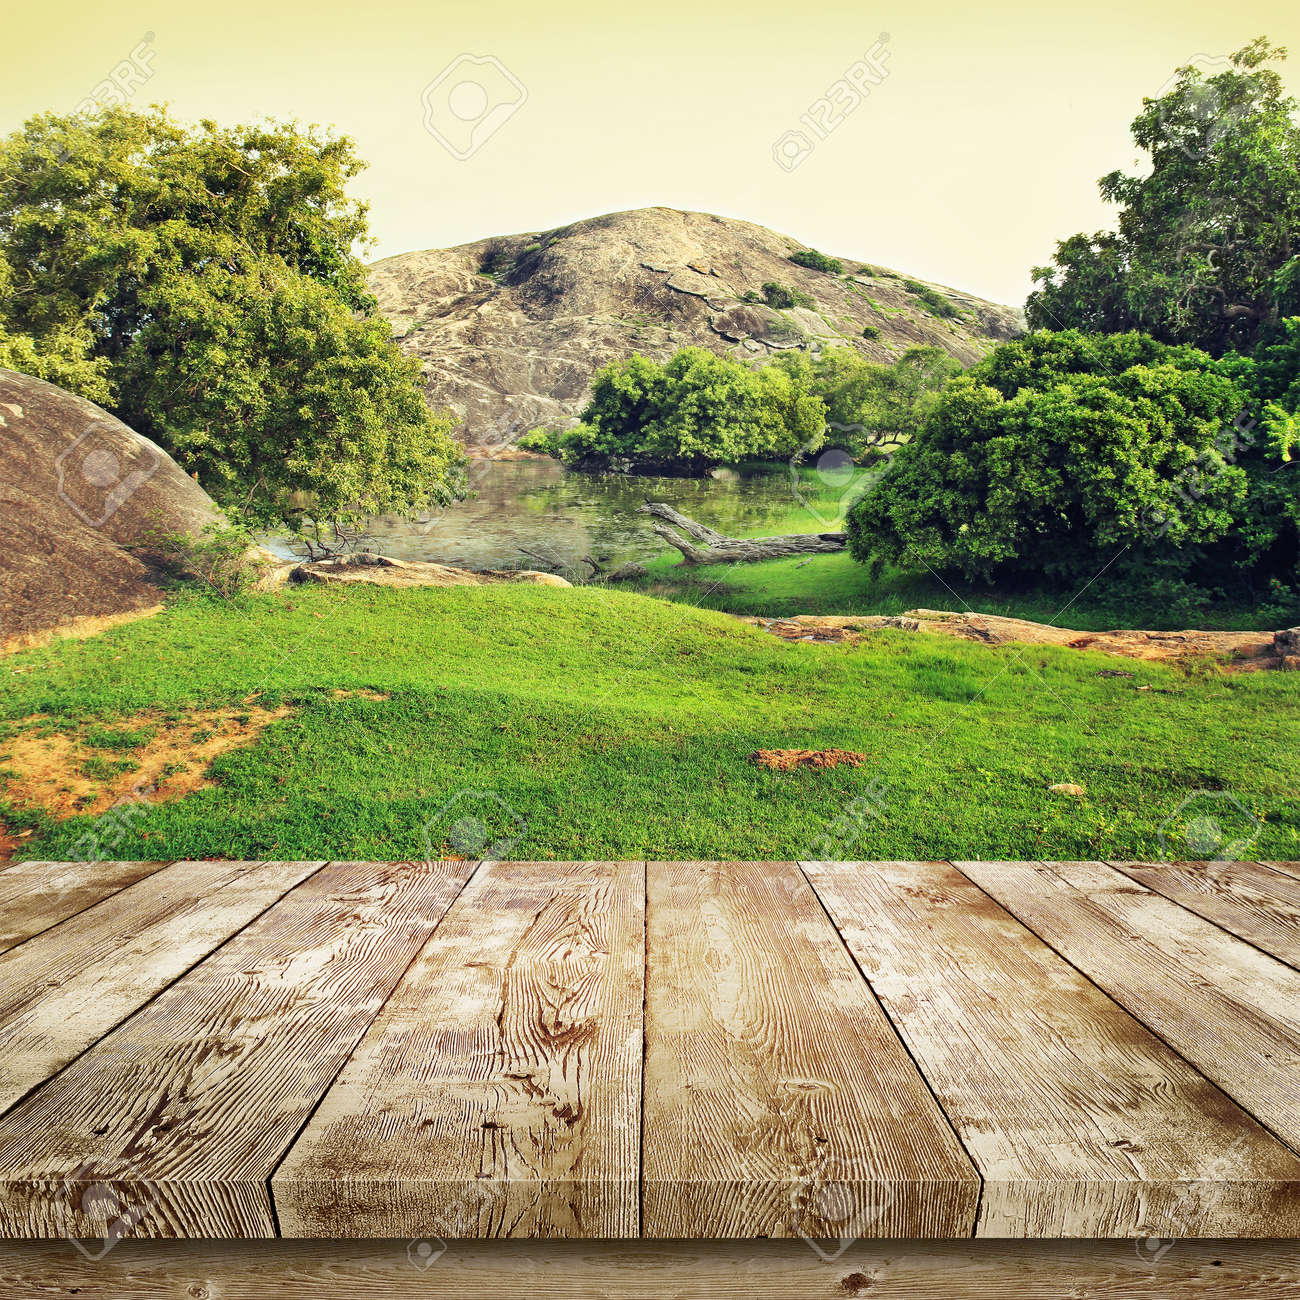 Green Grass And Trees Beauty Nature Background Standard Bild